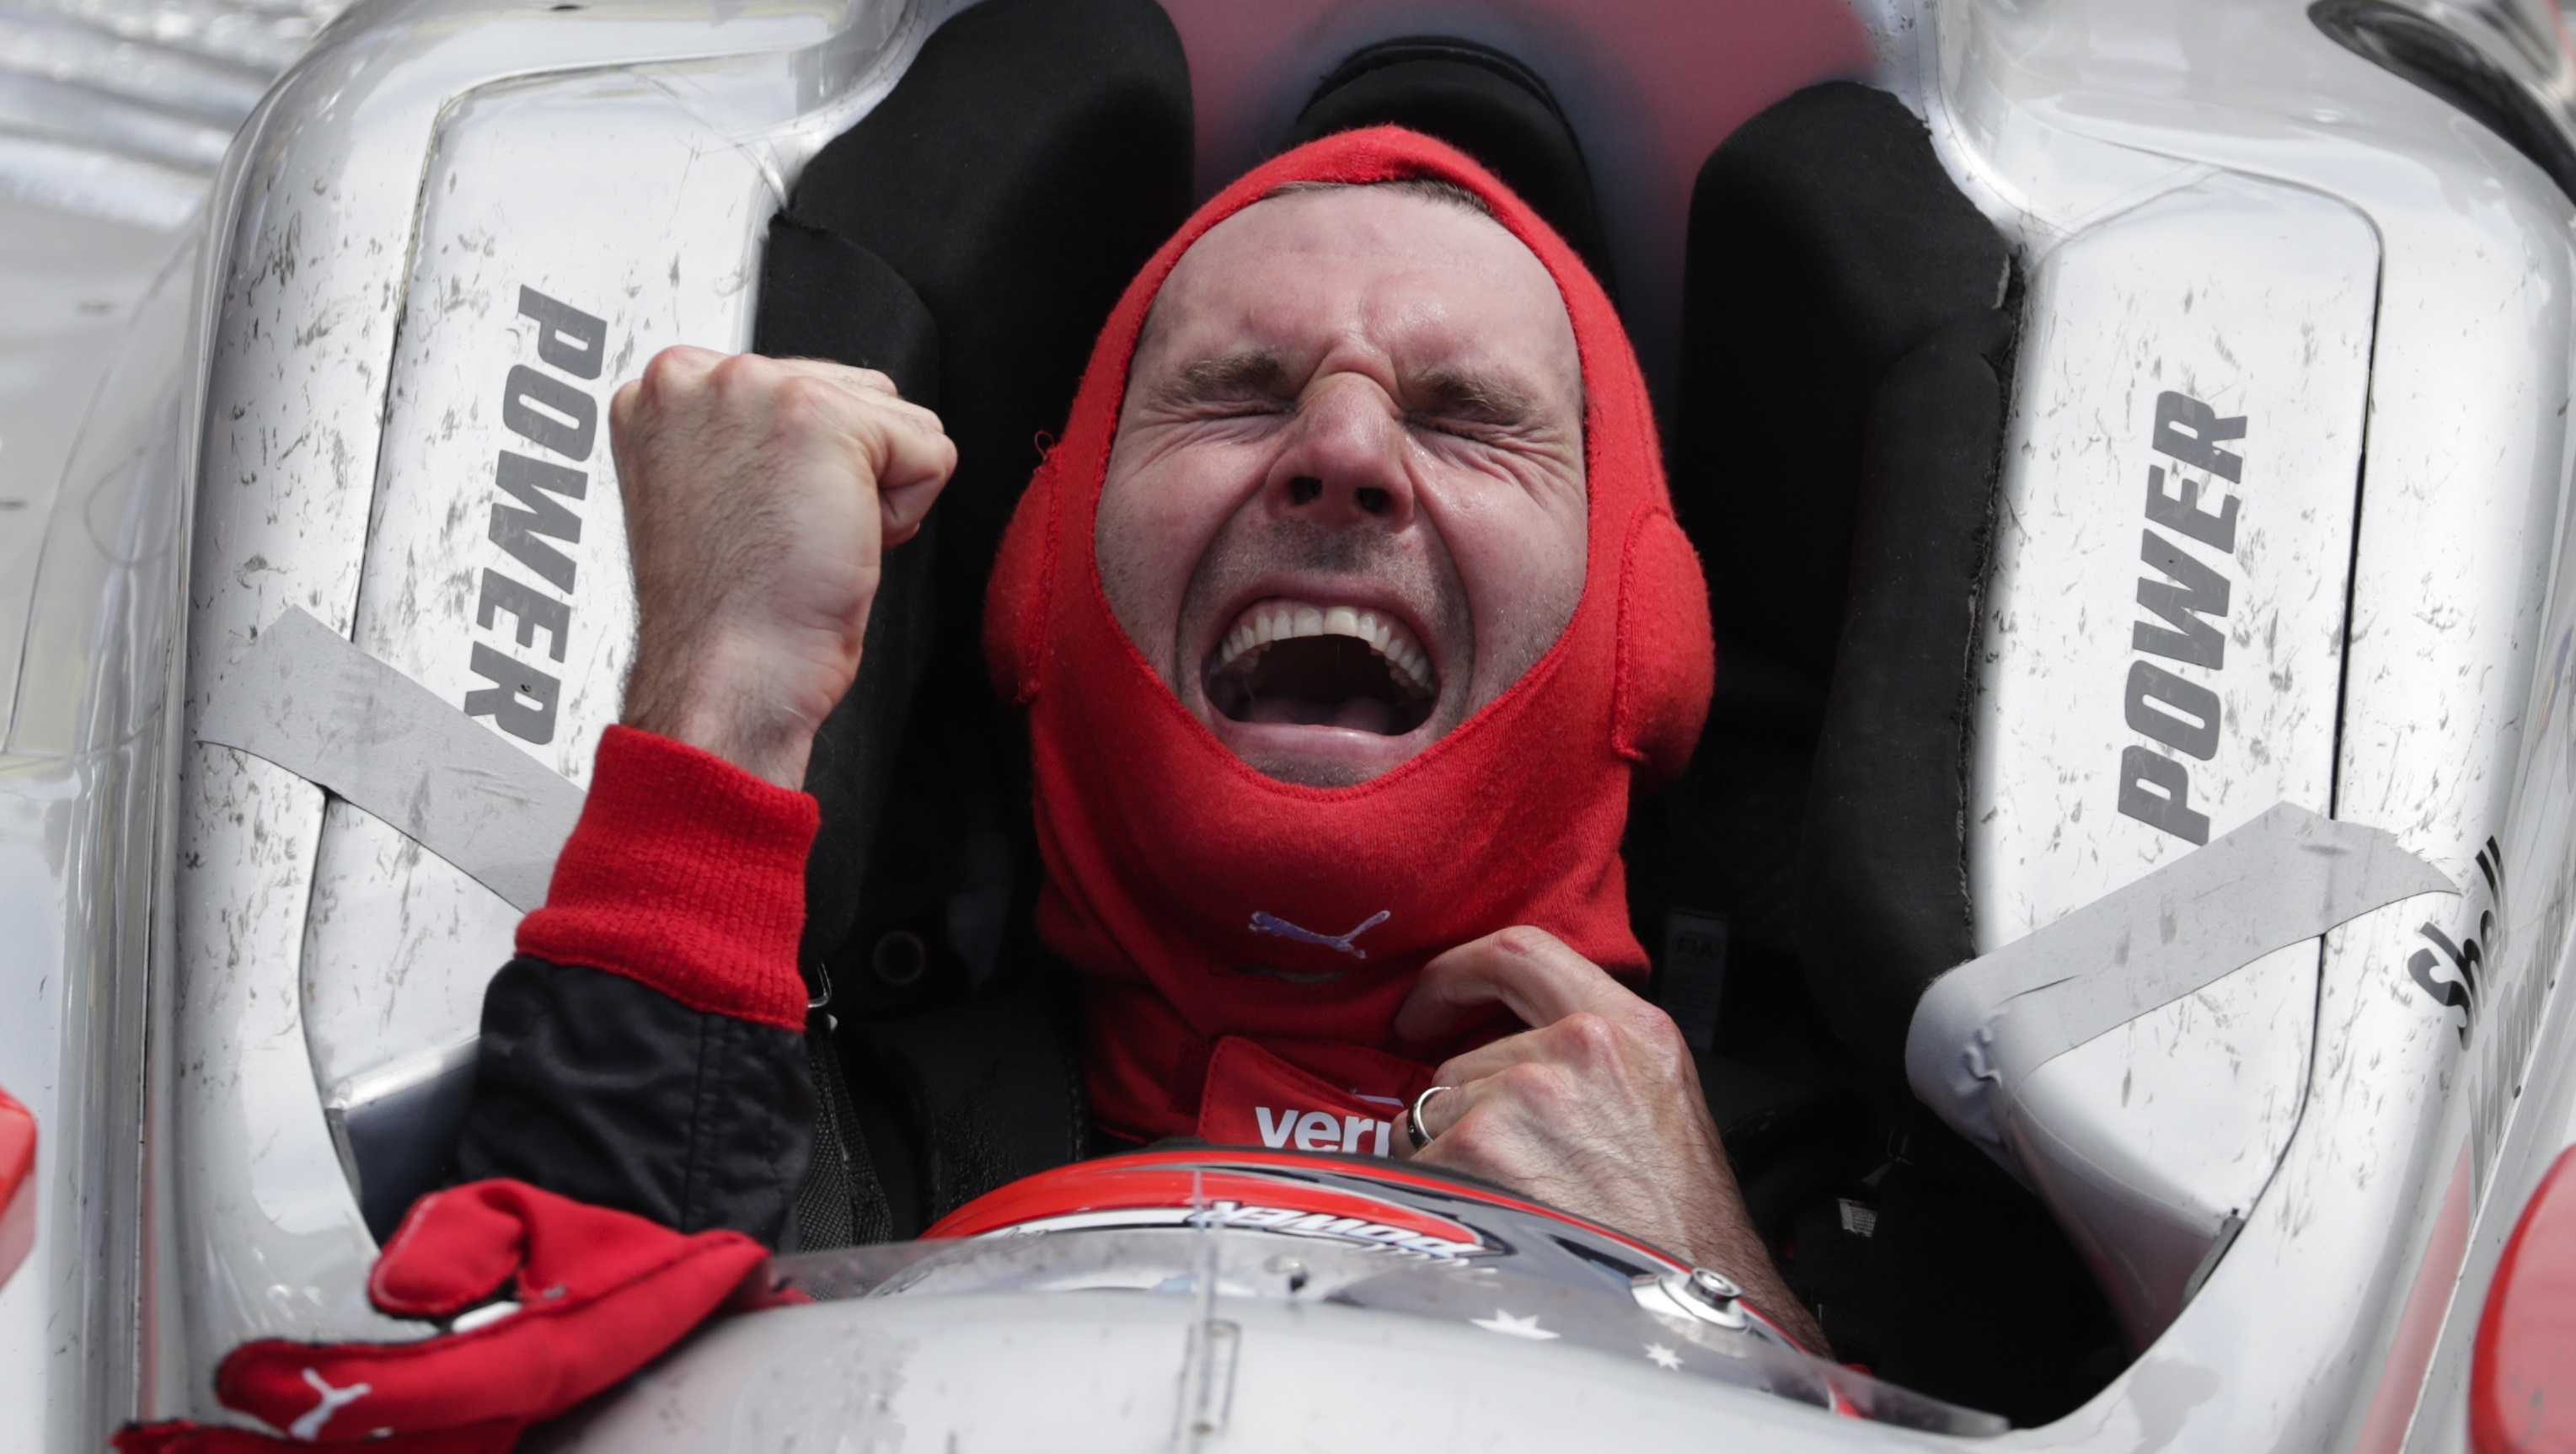 Will Power, of Australia, celebrates after winning the Indianapolis 500 auto race at Indianapolis Motor Speedway in Indianapolis, Sunday, May 27, 2018.